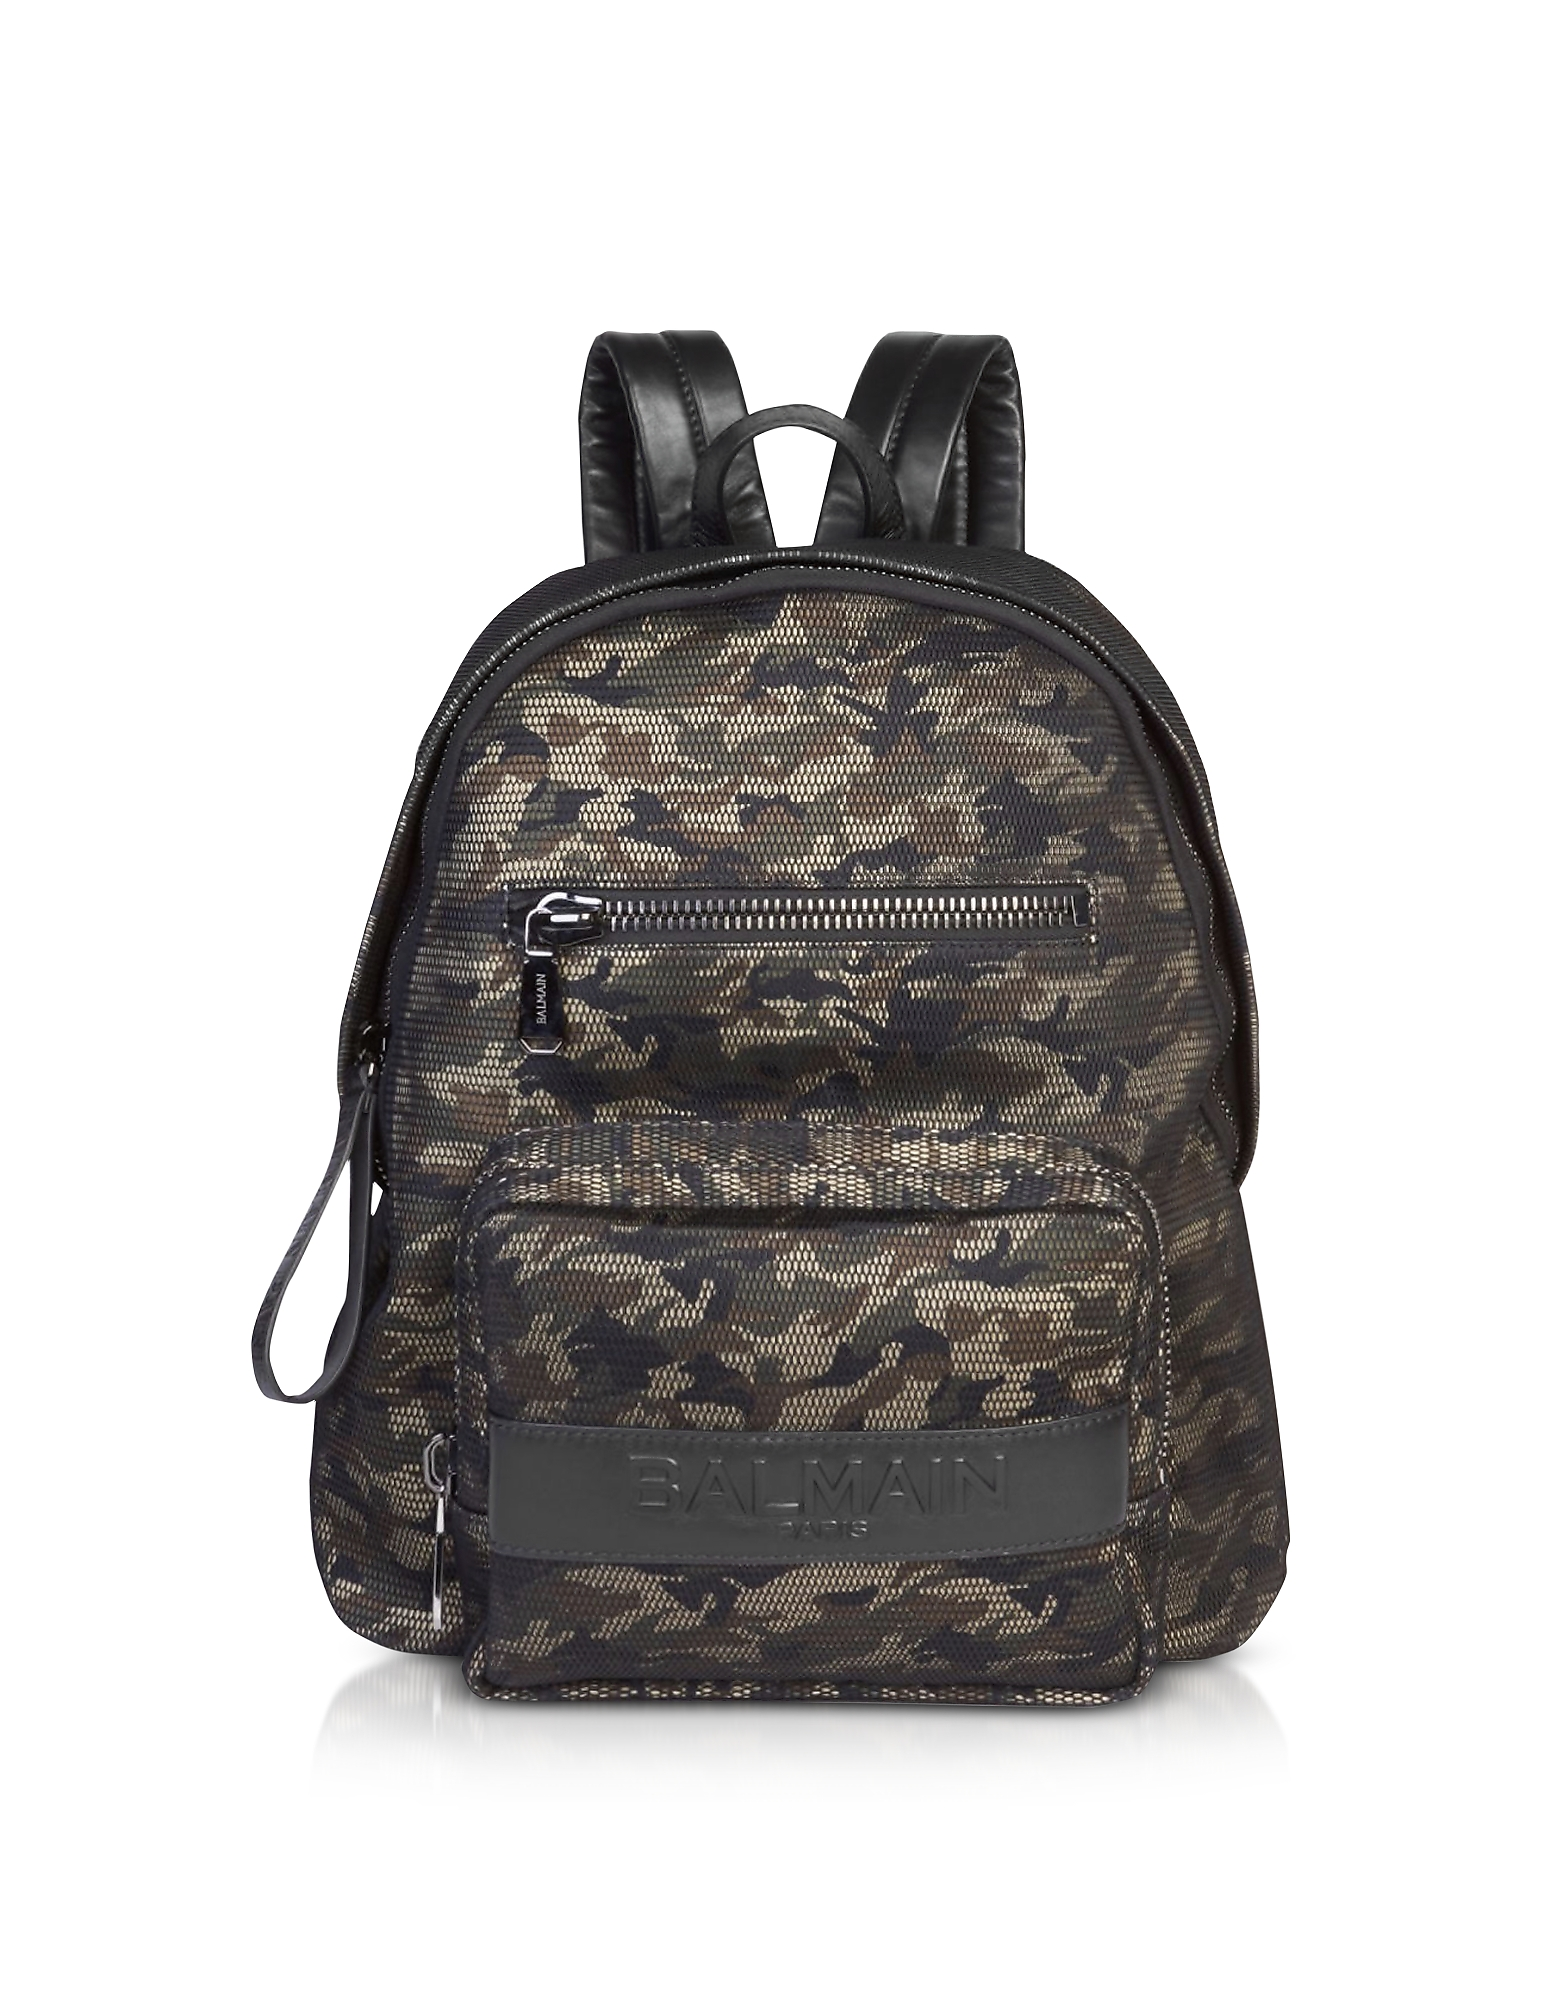 Military Green/Black Camouflage Nylon Men's Club Backpack w/Embossed Signature Logo от Forzieri.com INT